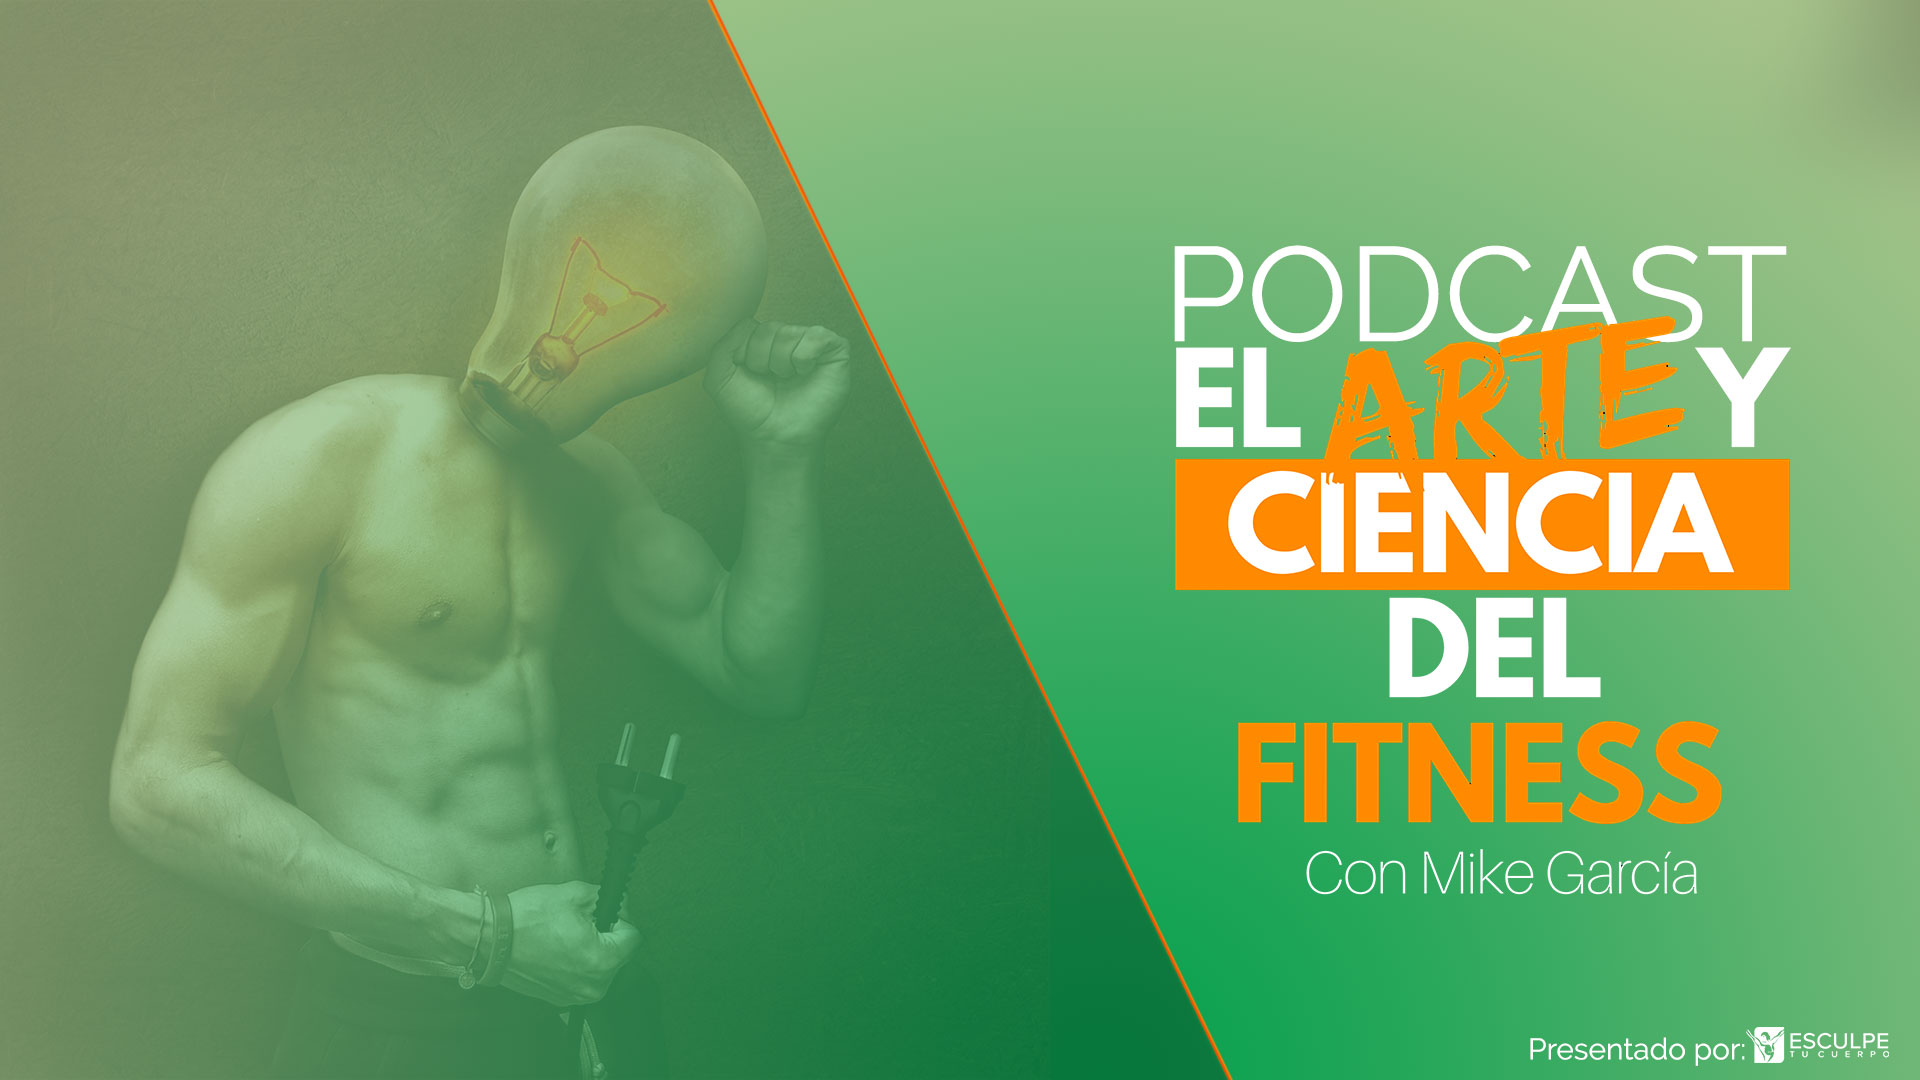 podcast-el-arte-y-ciencia-del-fitness-cover